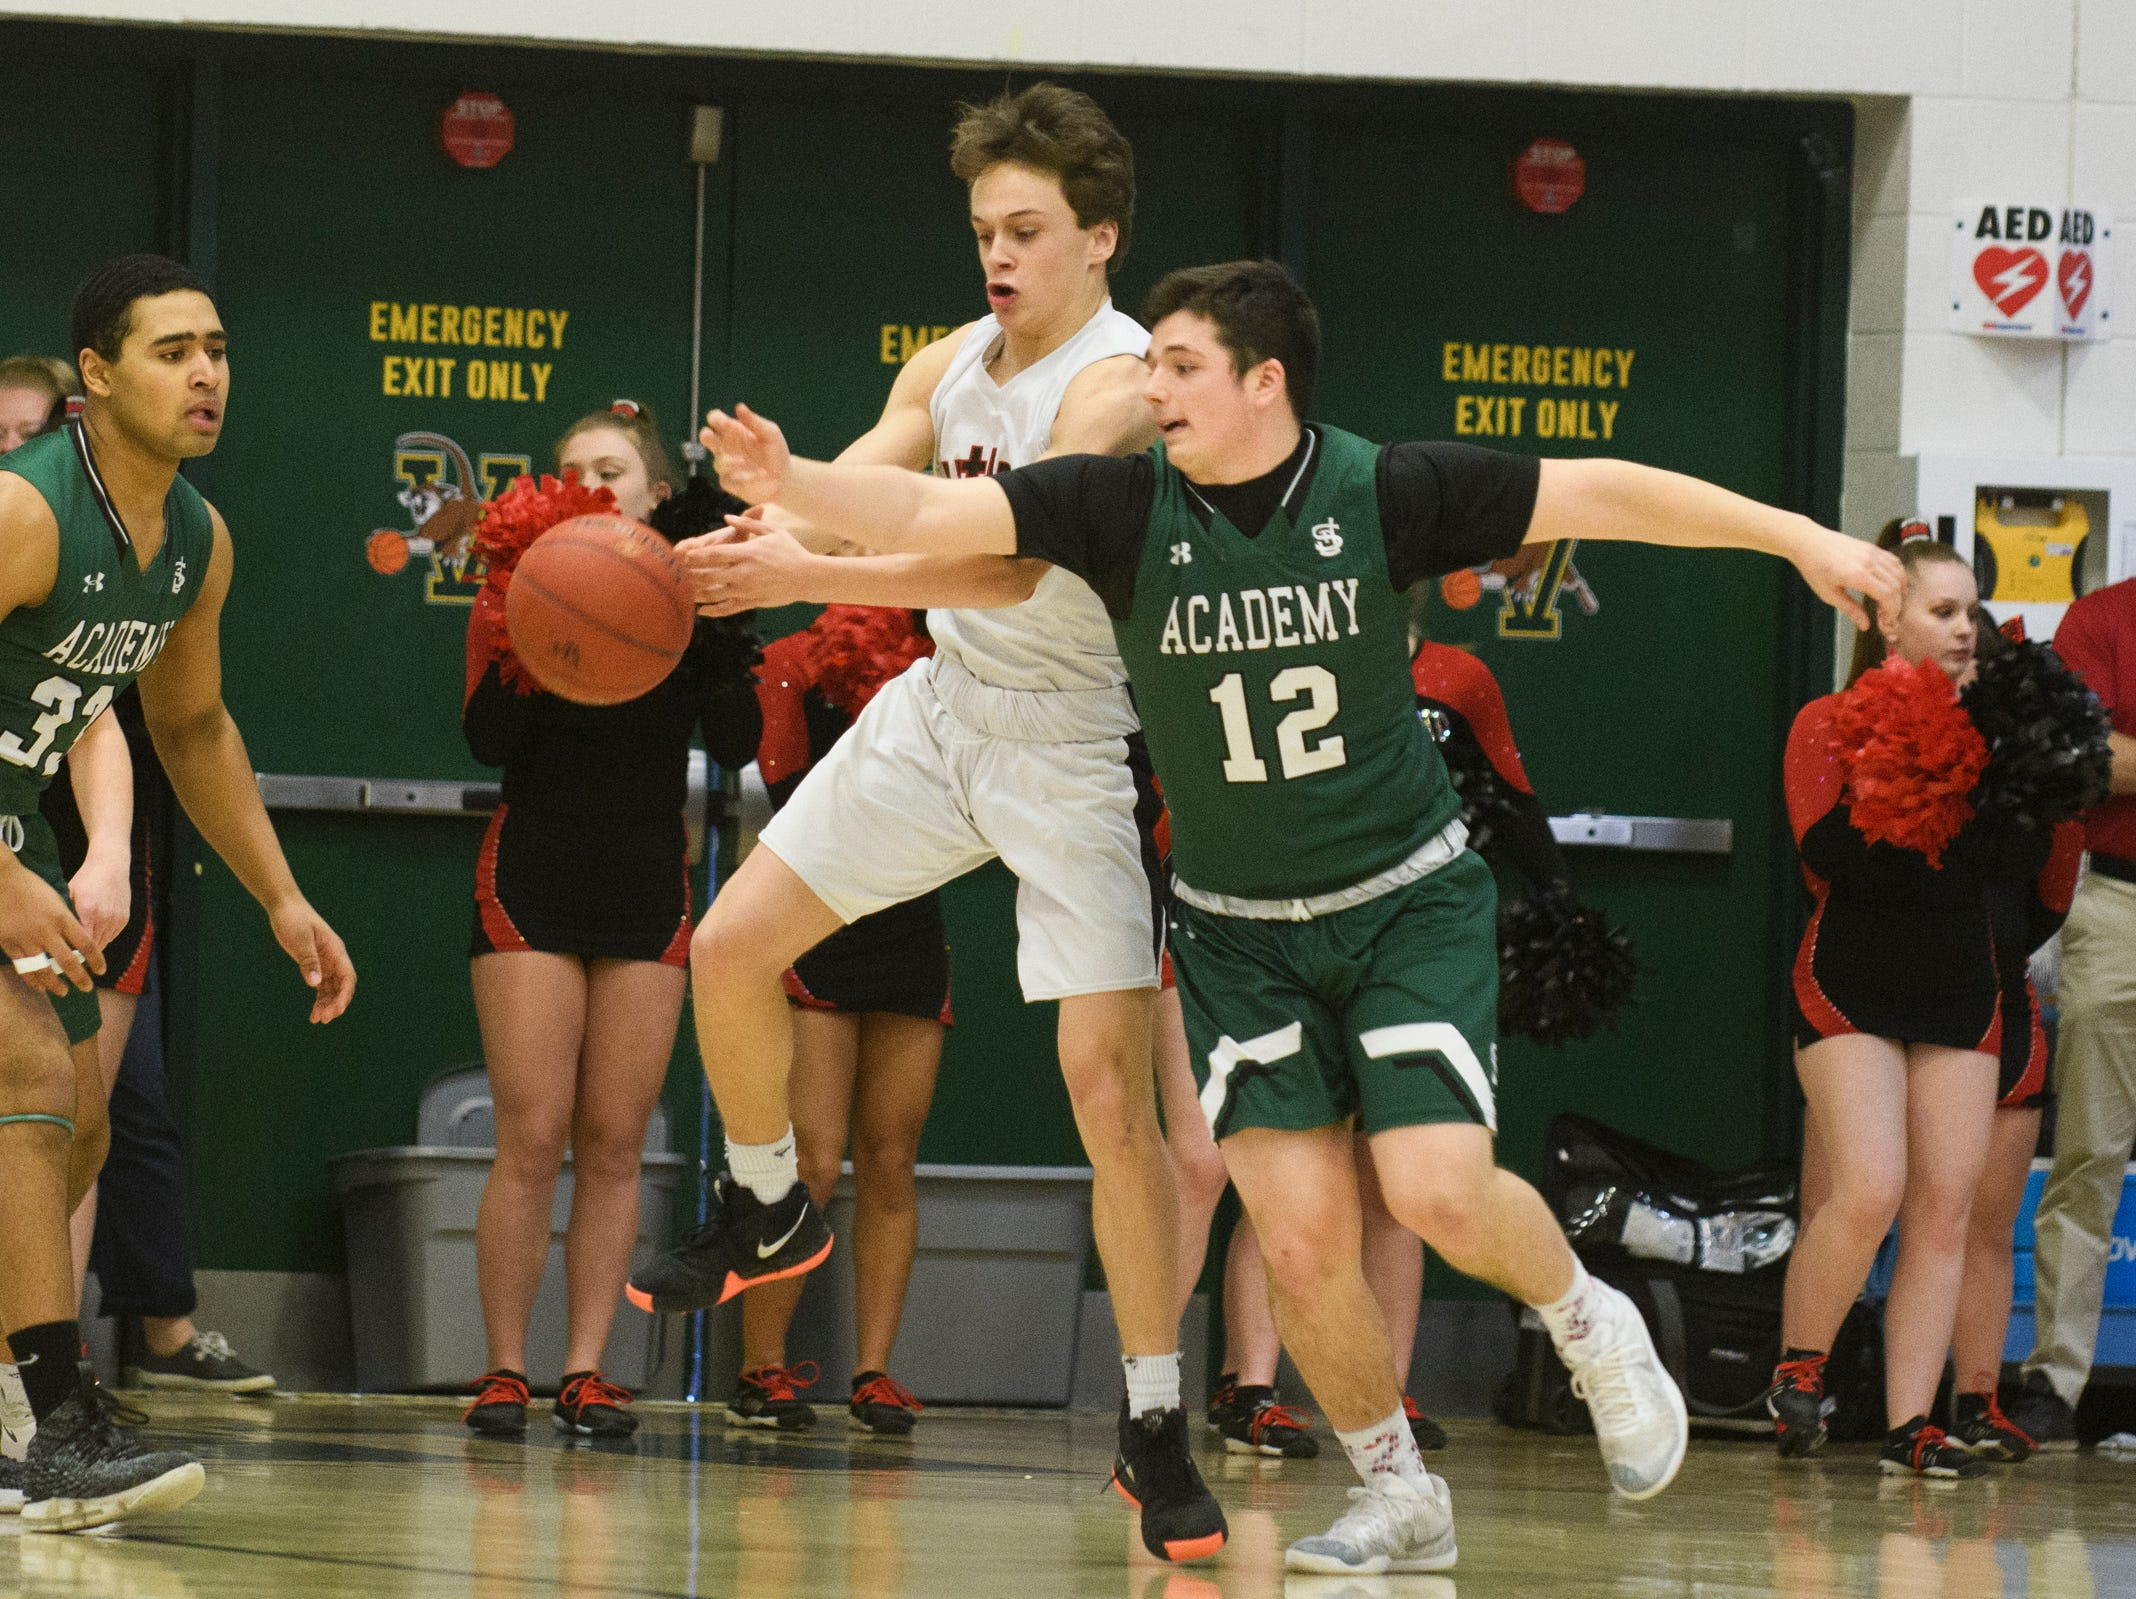 St. Johnsbury's Nic Guckin (12) battles for the loose ball with Rutland's Eric Coughlin (20) during the DI boys basketball championship game between the St. Johnsbury Hilltoppers and the Rutland Raiders at Patrick Gym on Sunday afternoon March 17, 2019 in Burlington, Vermont.